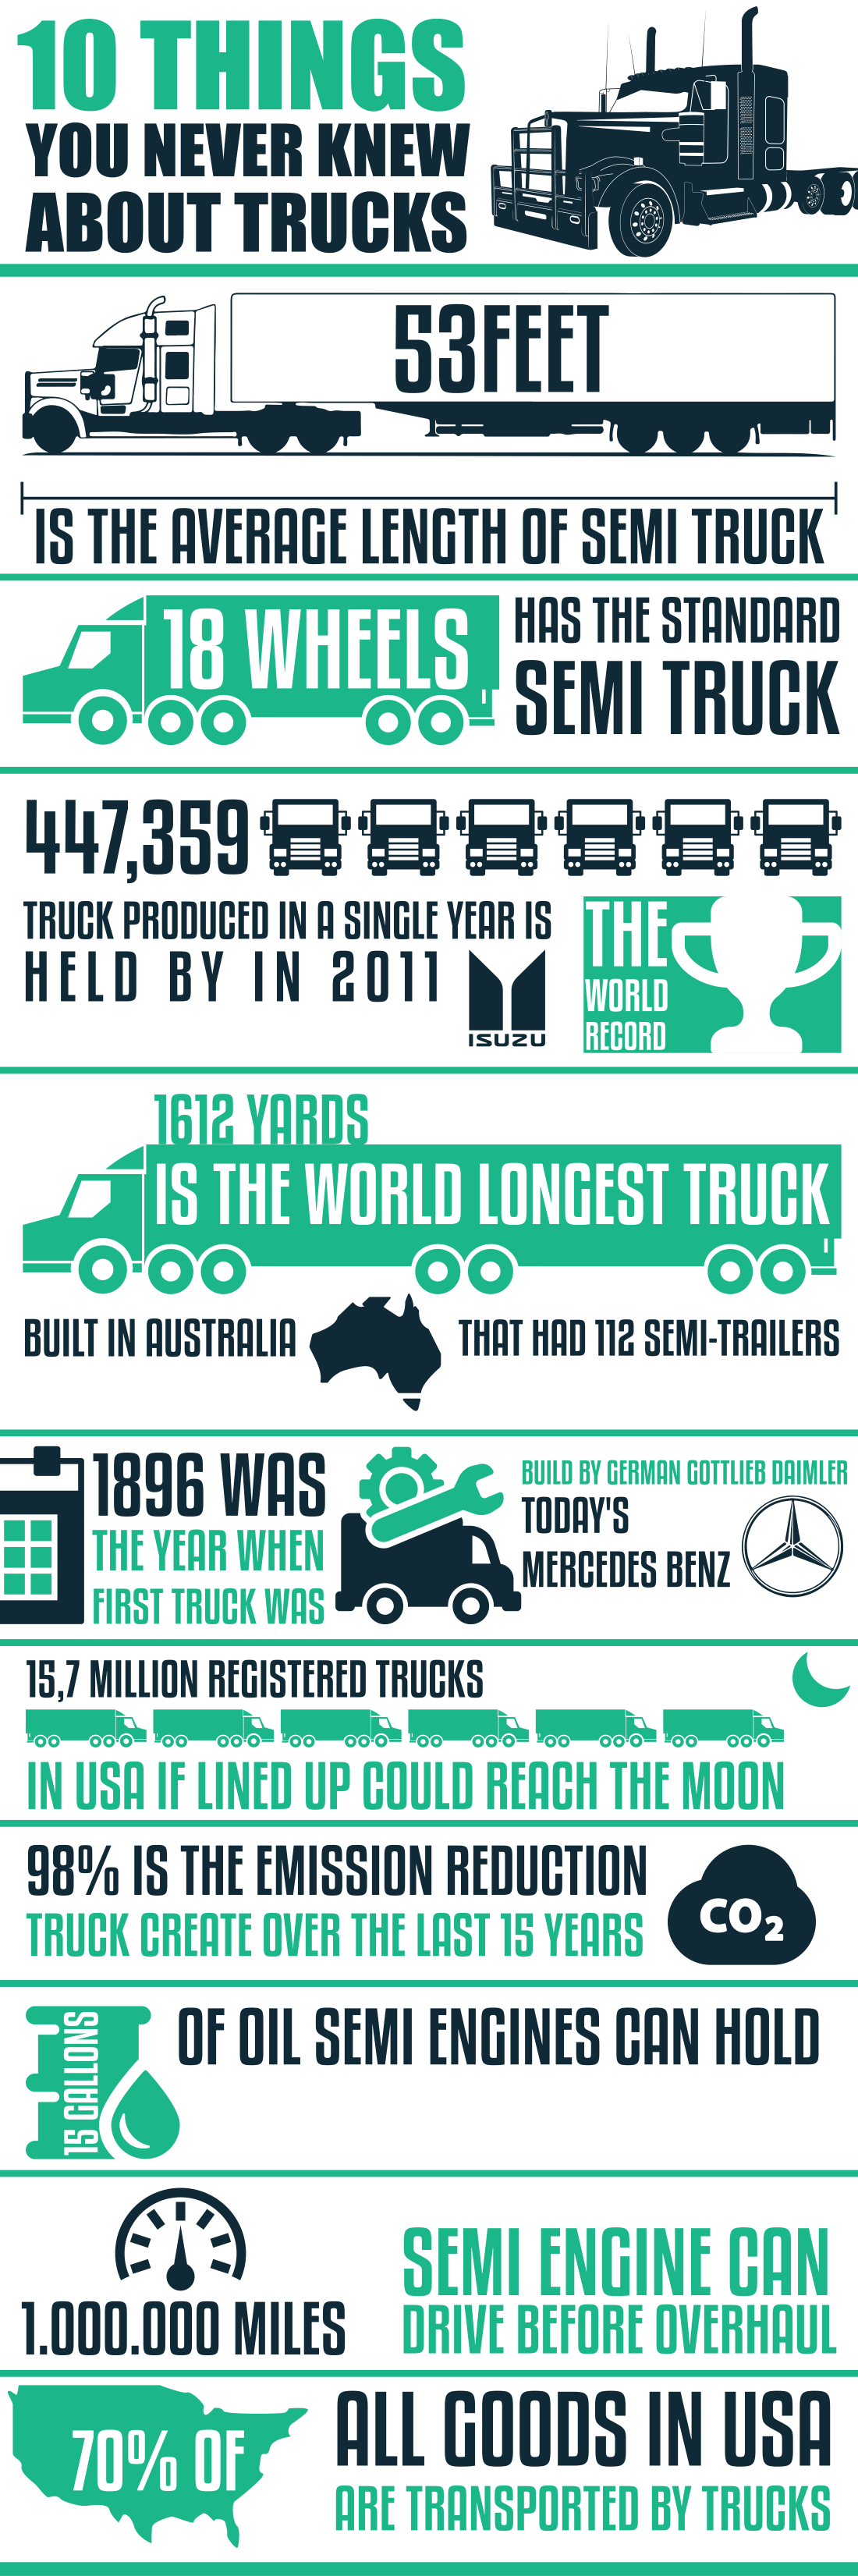 10 Things You Never Knew About Trucks